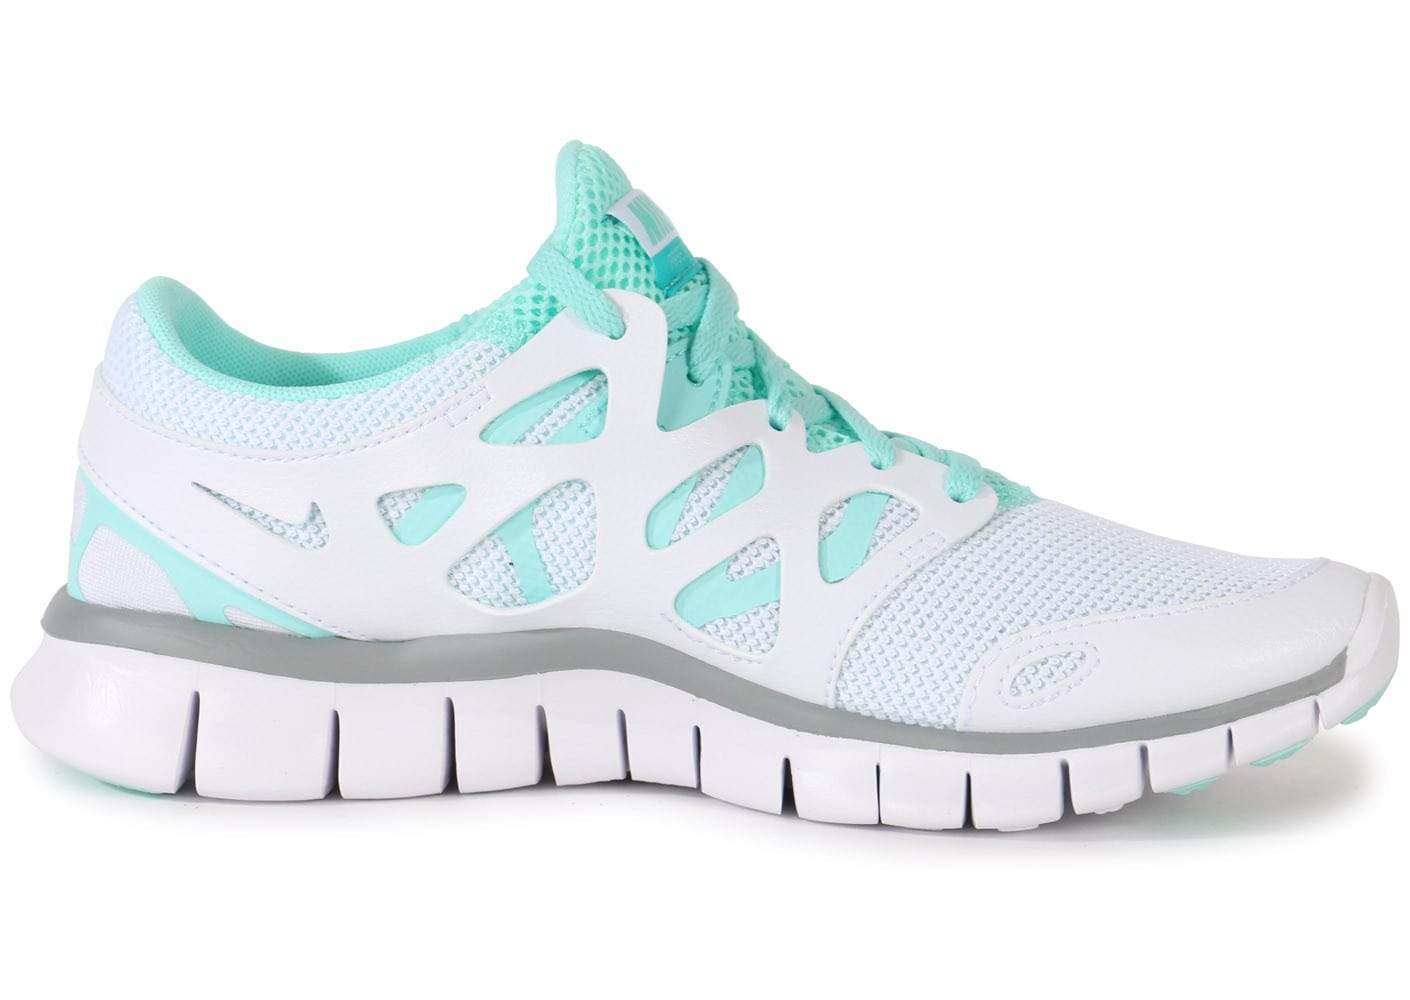 ... Chaussures Nike Free Run 2 Ext Blanche vue dessous ...